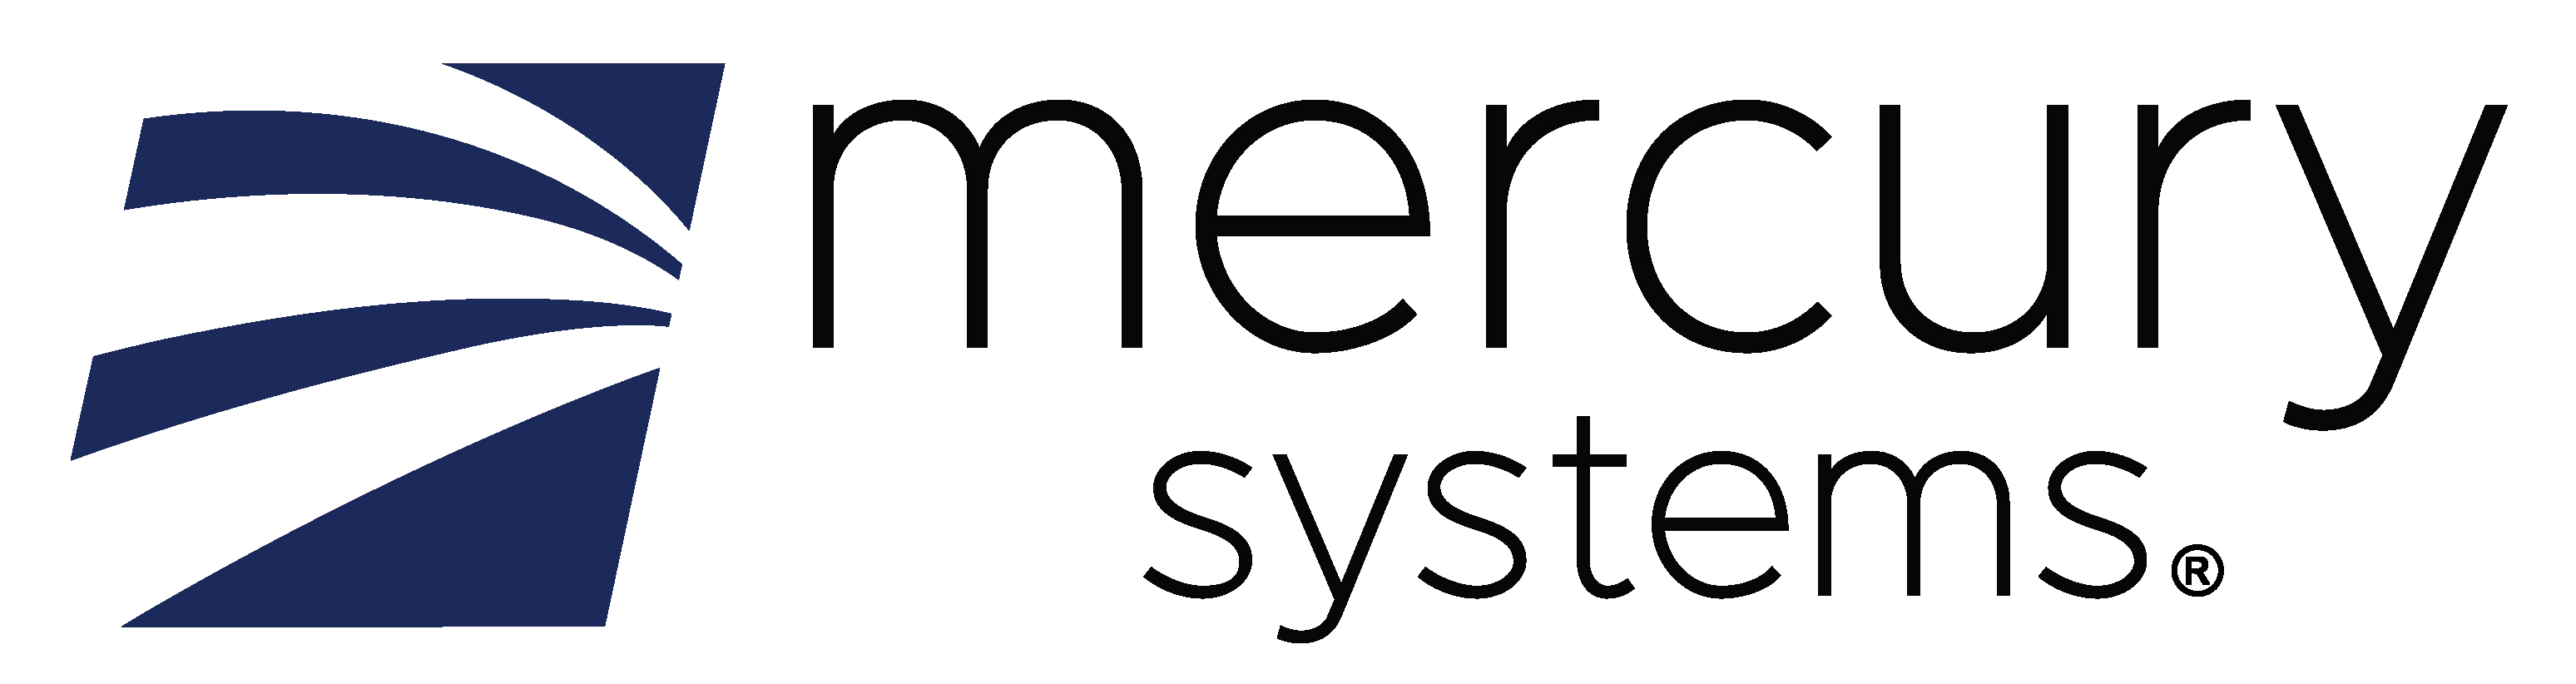 Mercury-logo-registered-final-2color-01.jpg